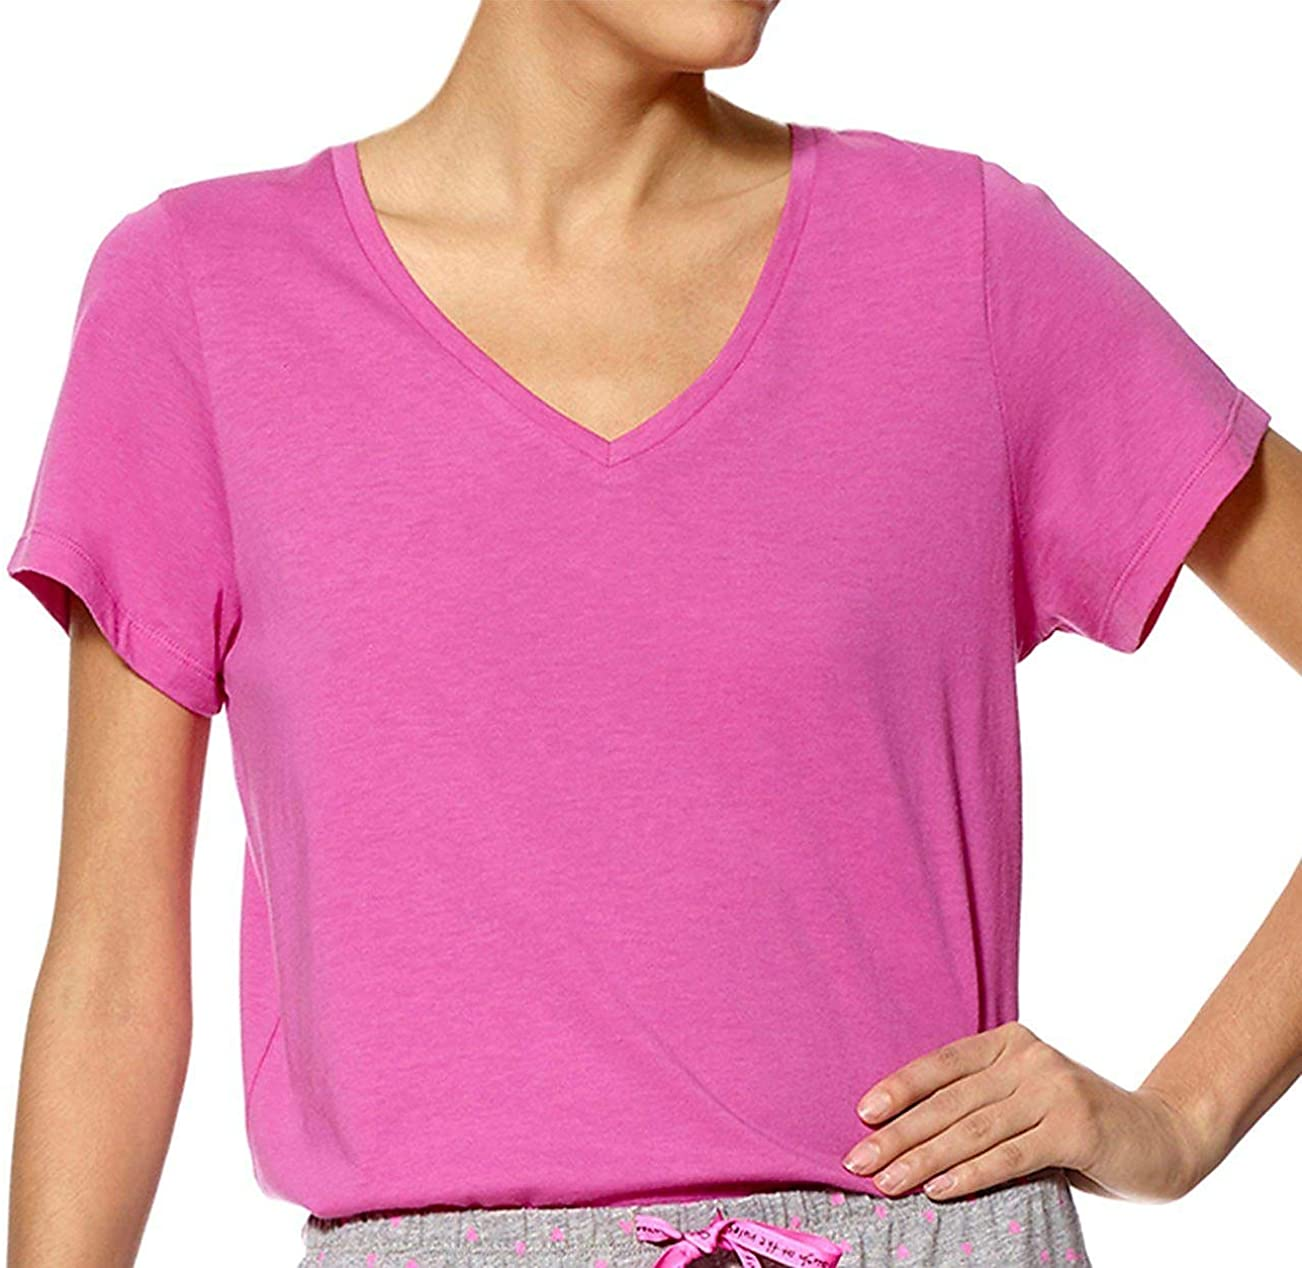 HUE Women's Short Sleeve Free Shipping Cheap Bargain Gift V-Neck Sleep Today's only Tee